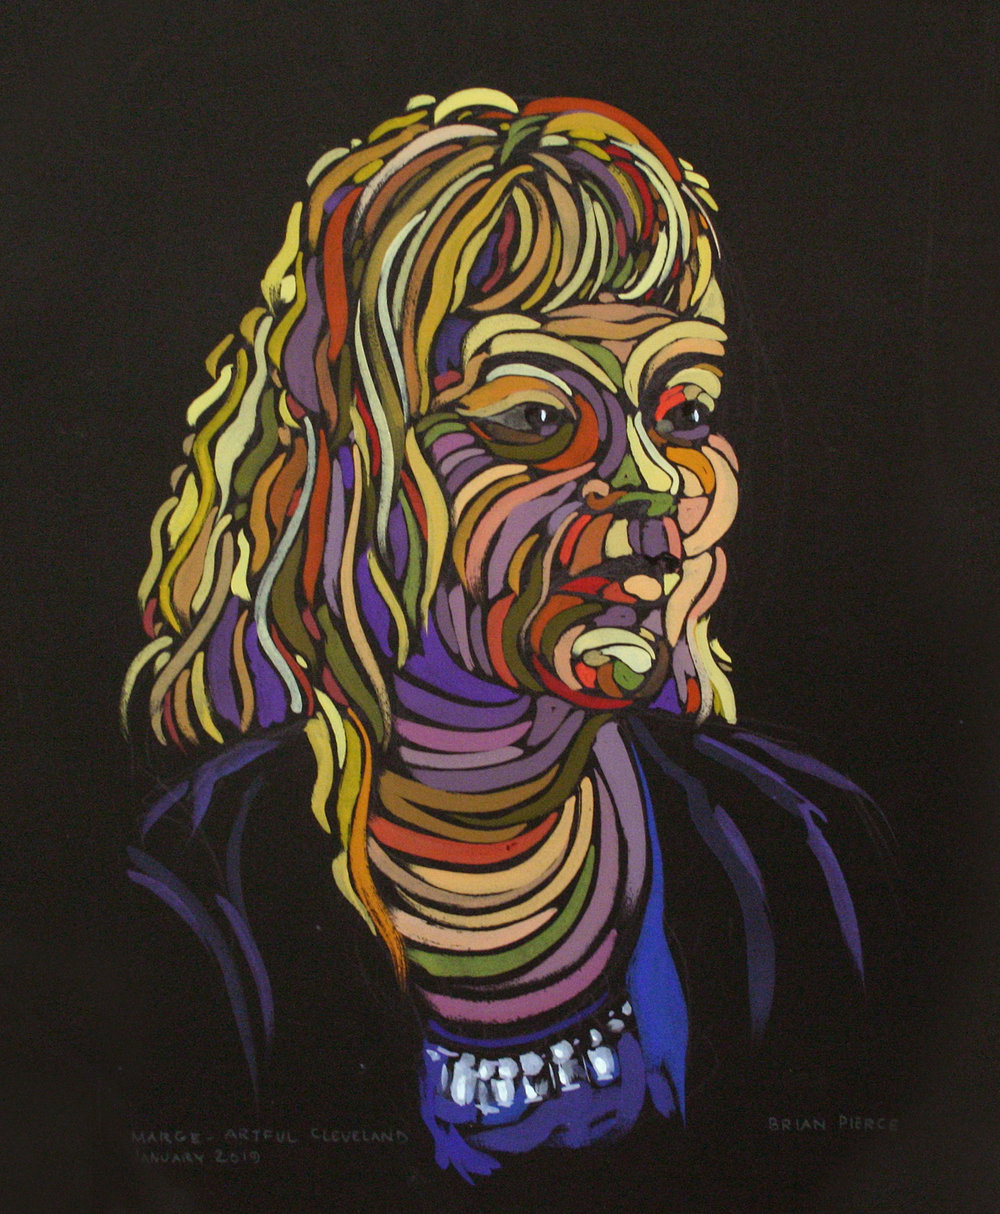 Brian Pierce did this colored pencil drawing .